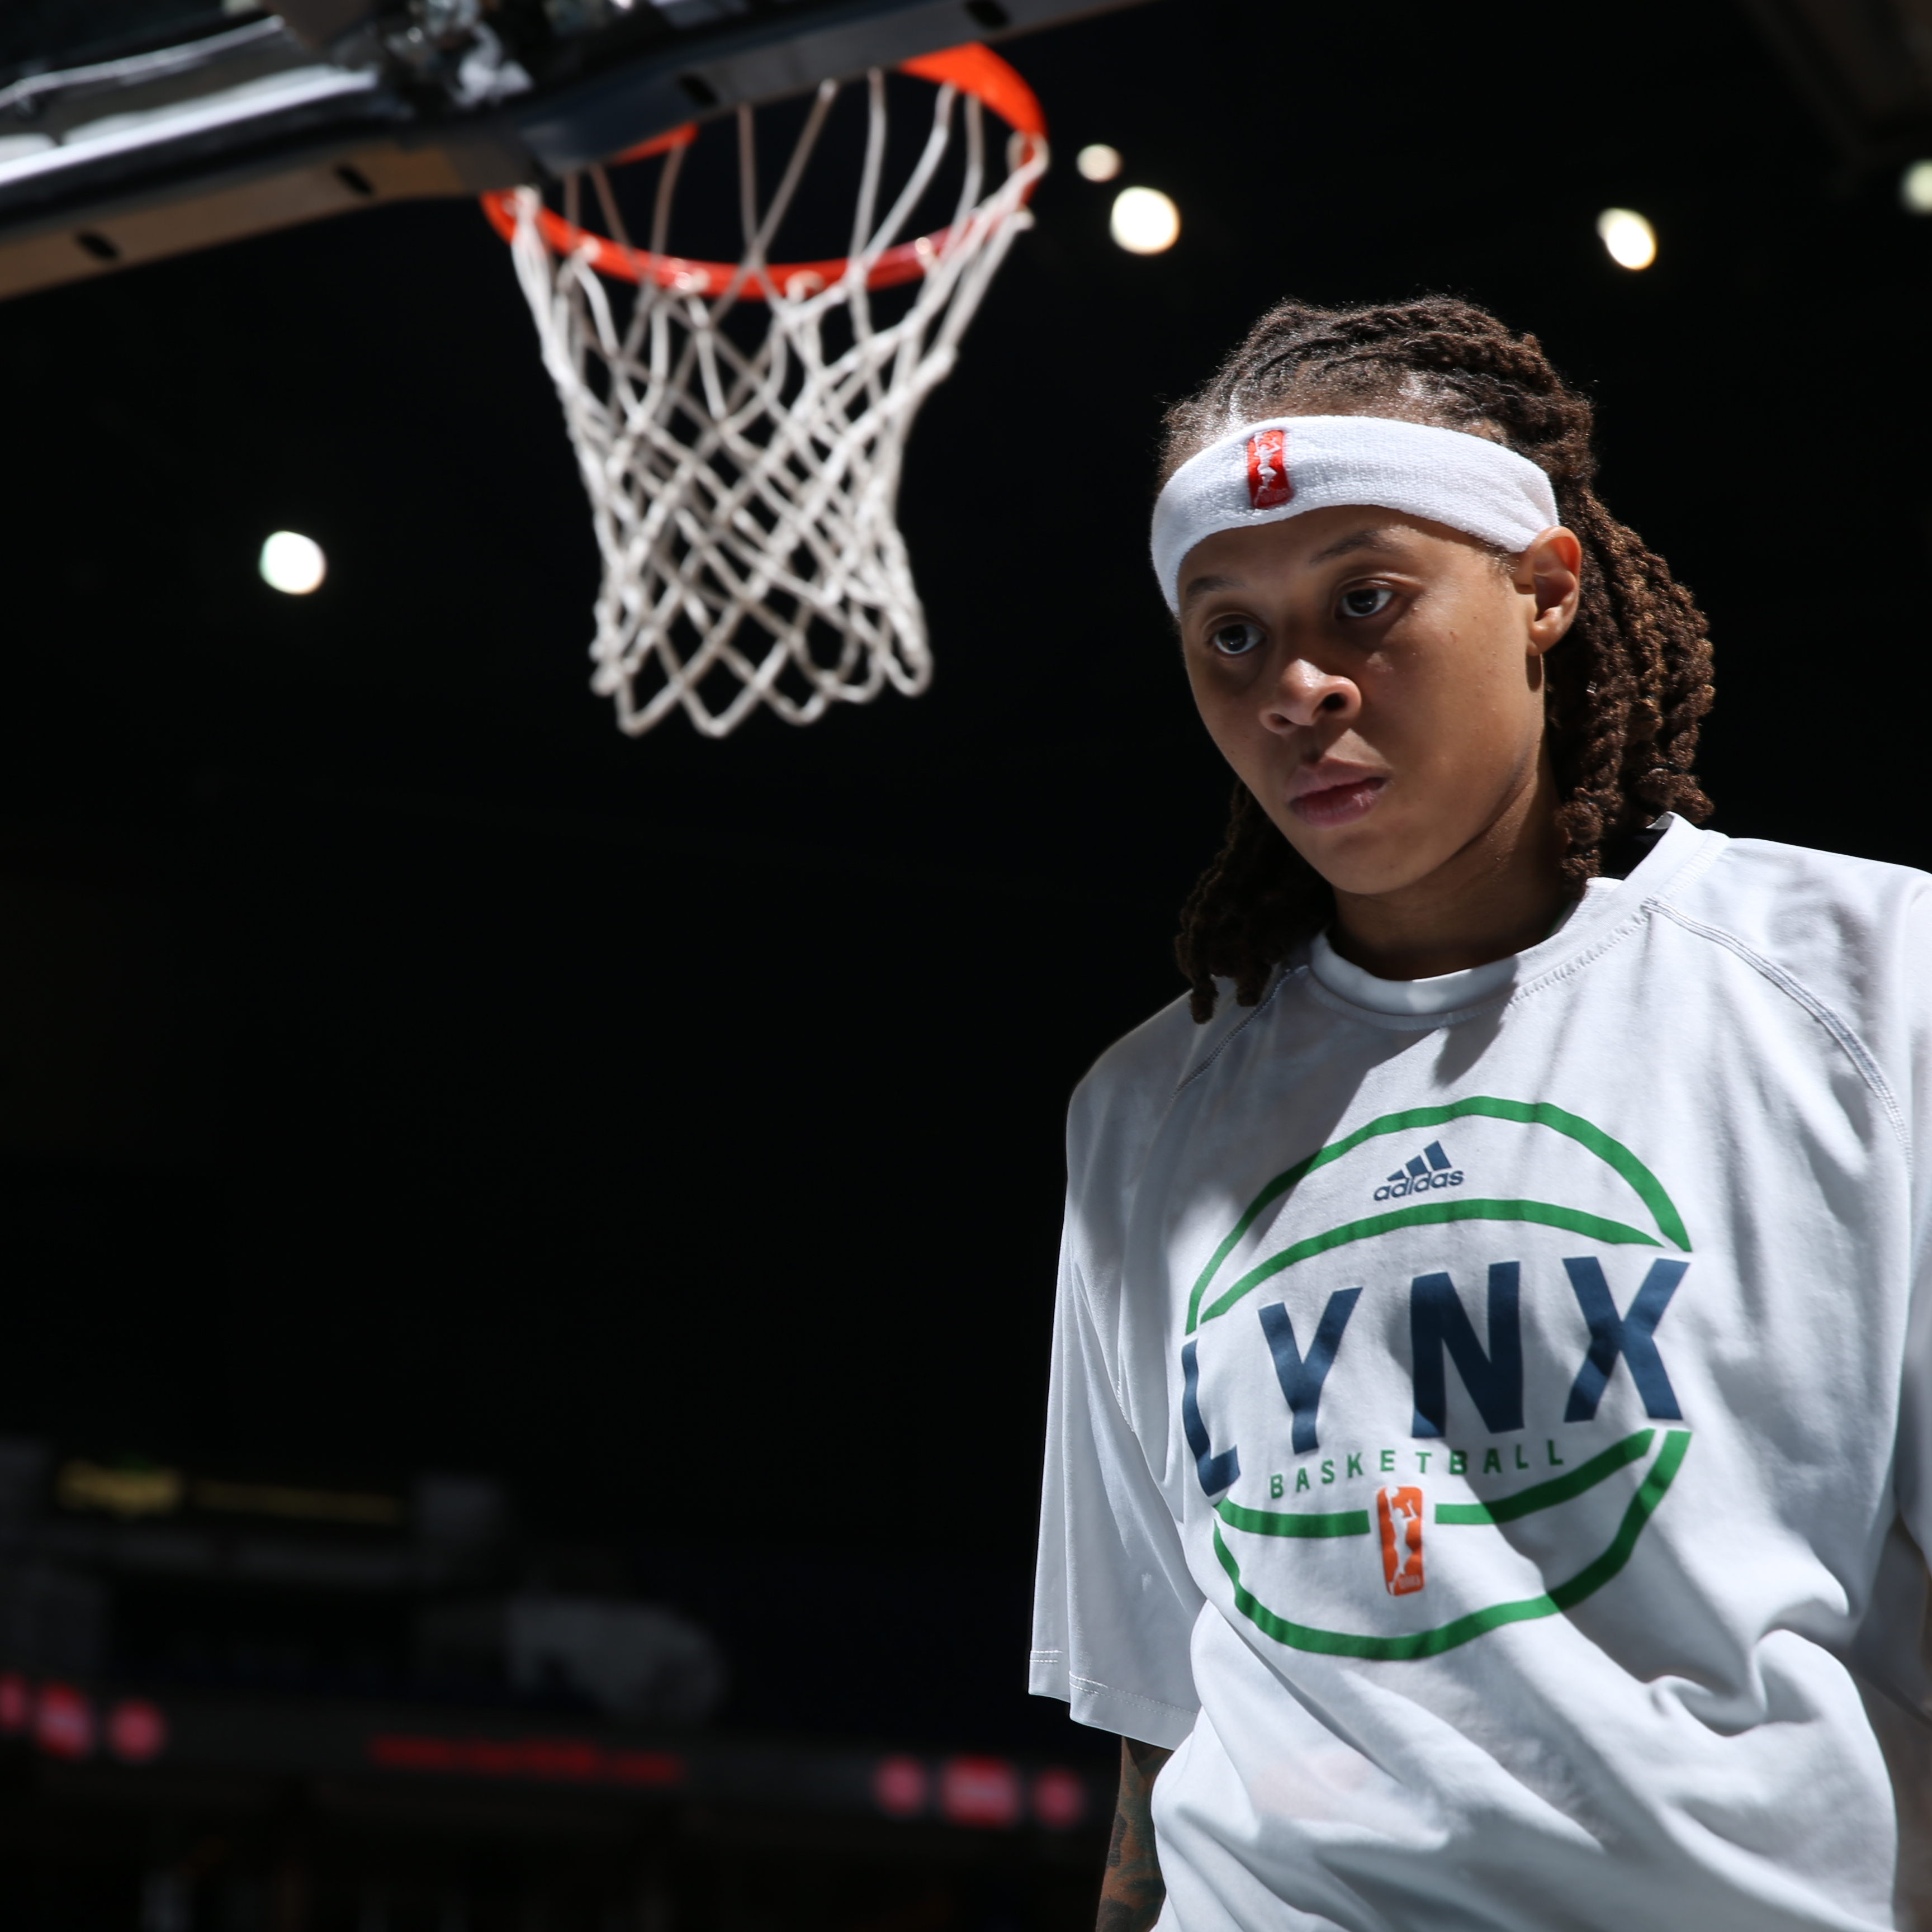 MINNEAPOLIS, MN - SEPTEMBER 18:  Seimone Augustus #33 of the Minnesota Lynx during the national anthem before the game against the Los Angeles Sparks in Game 1 of the 2015 WNBA Western Conference Semifinal on September 18, 2015 at Target Center in Minneapolis, Minnesota.  NOTE TO USER: User expressly acknowledges and agrees that, by downloading and or using this Photograph, user is consenting to the terms and conditions of the Getty Images License Agreement. Mandatory Copyright Notice: Copyright 2015 NBAE (Photo by David Sherman/NBAE via Getty Images)